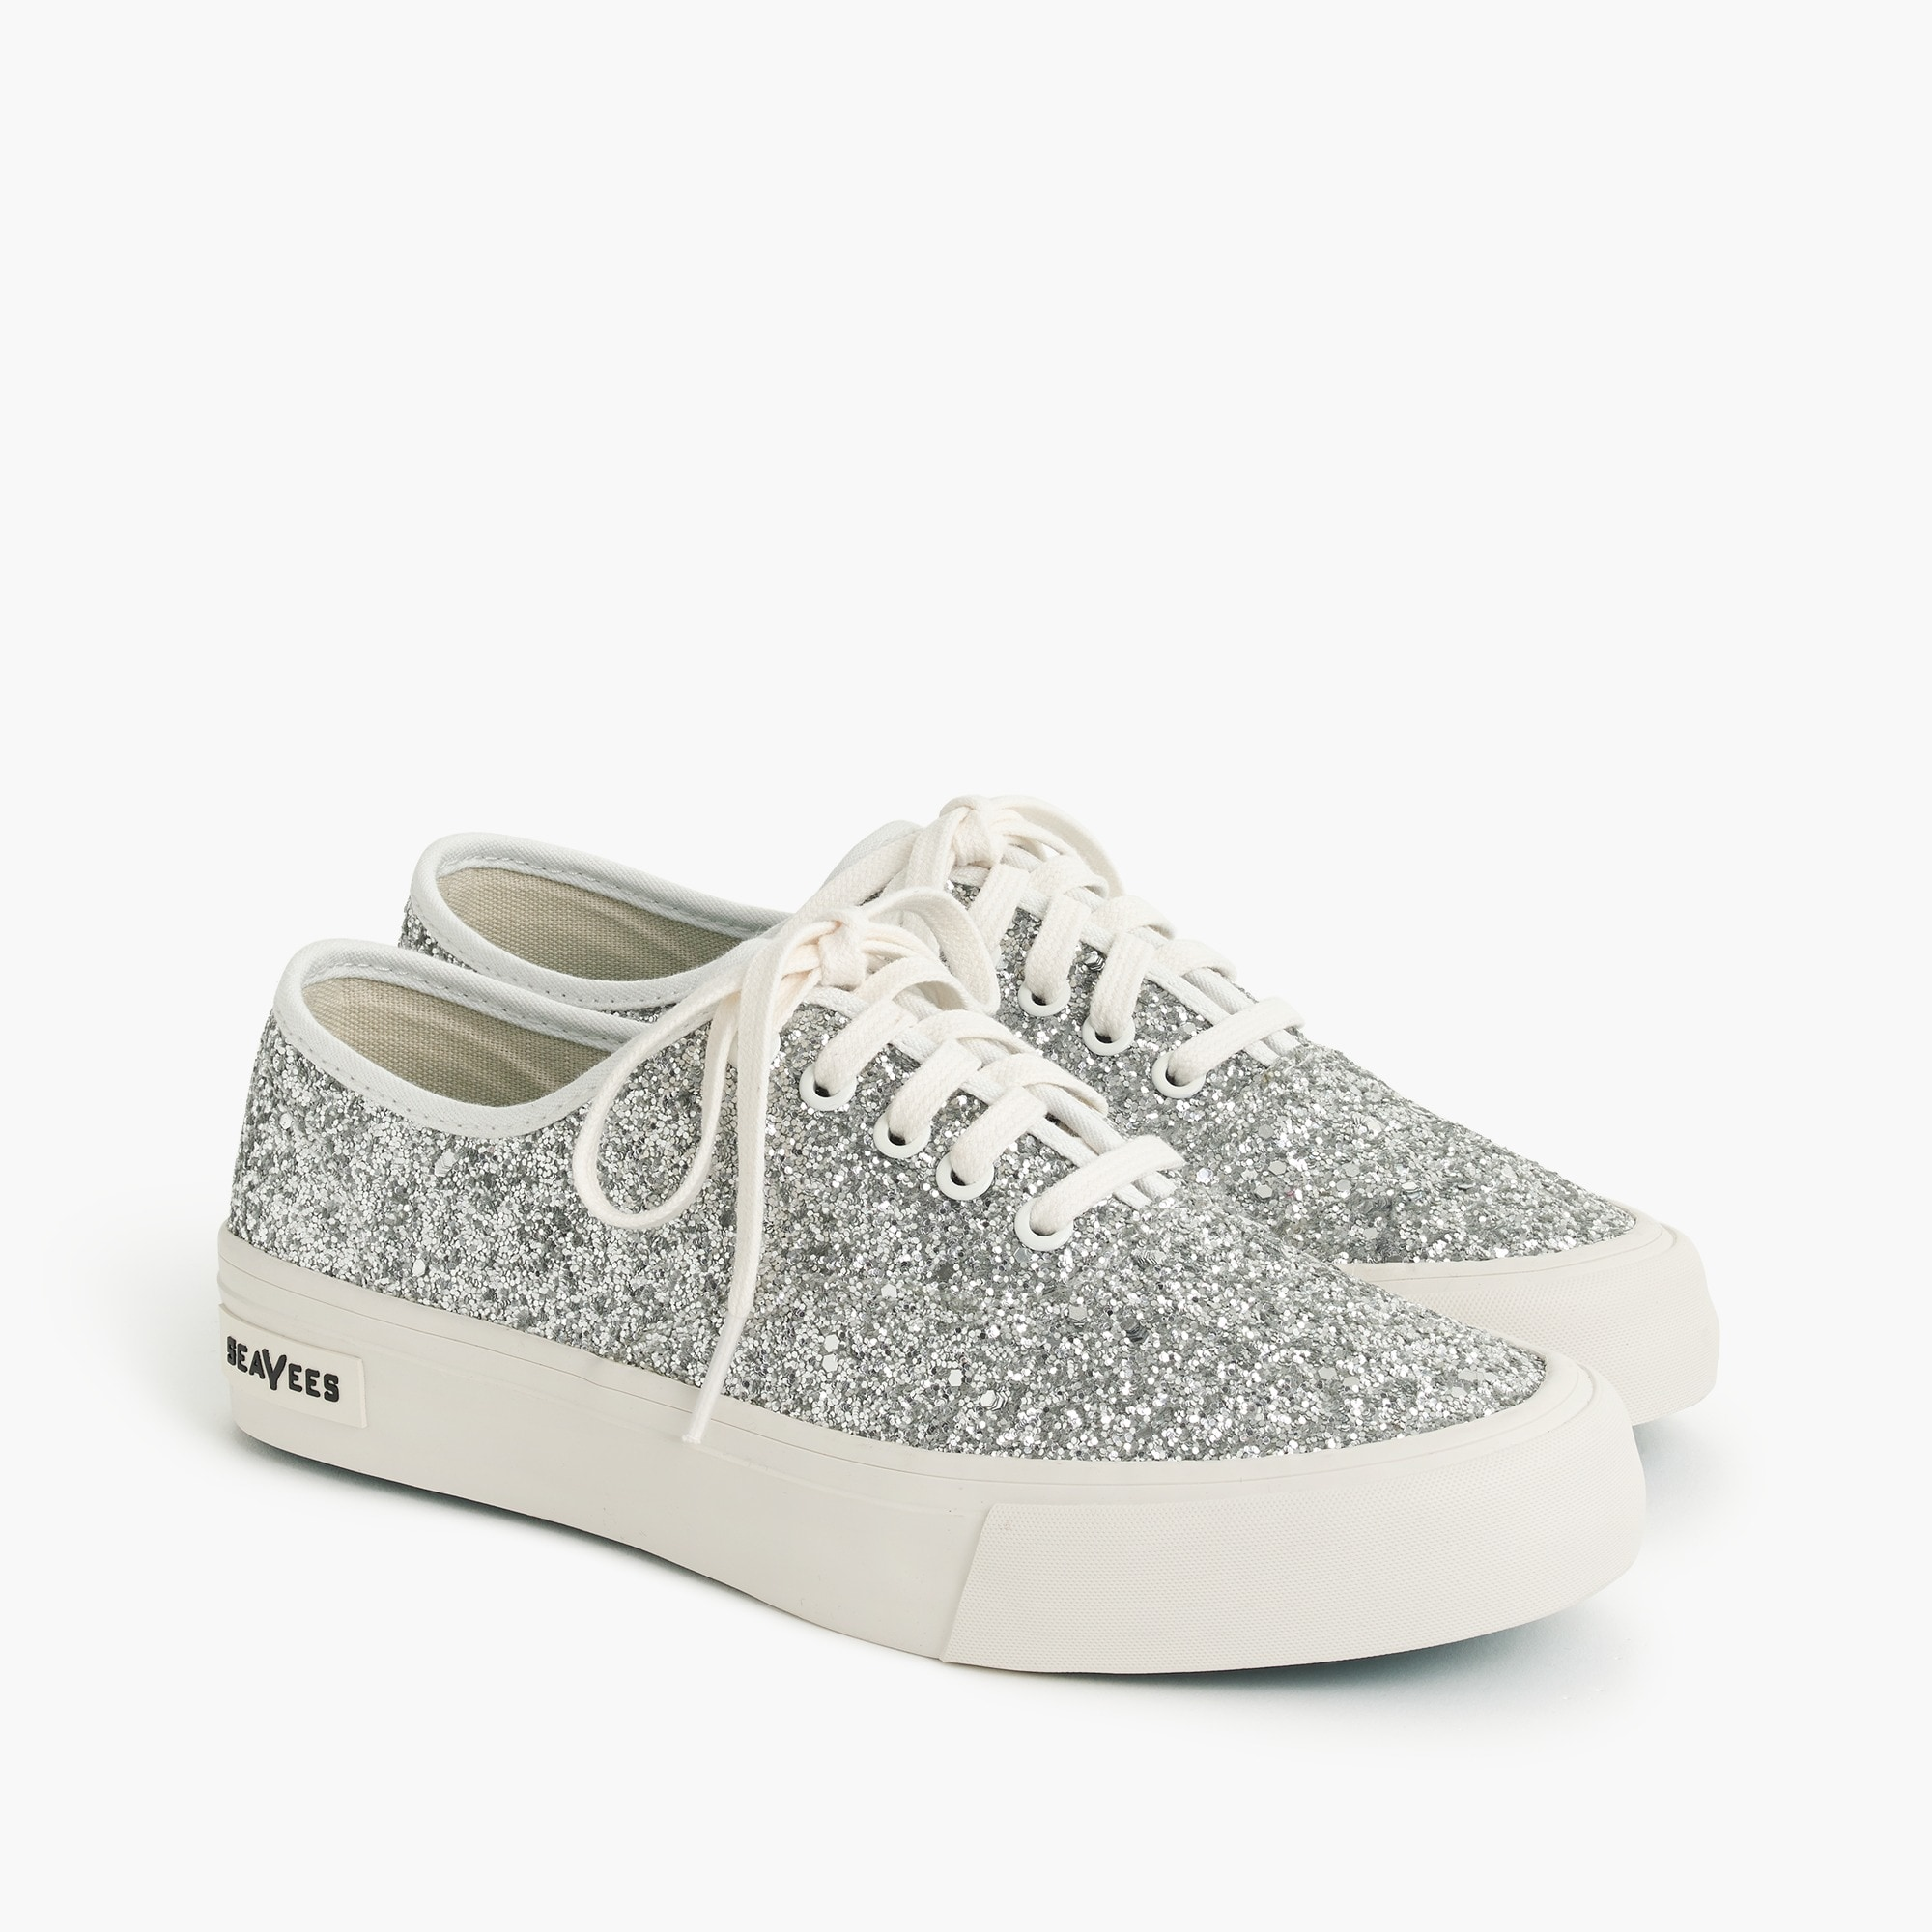 SeaVees® for J.Crew legend sneakers in glitter